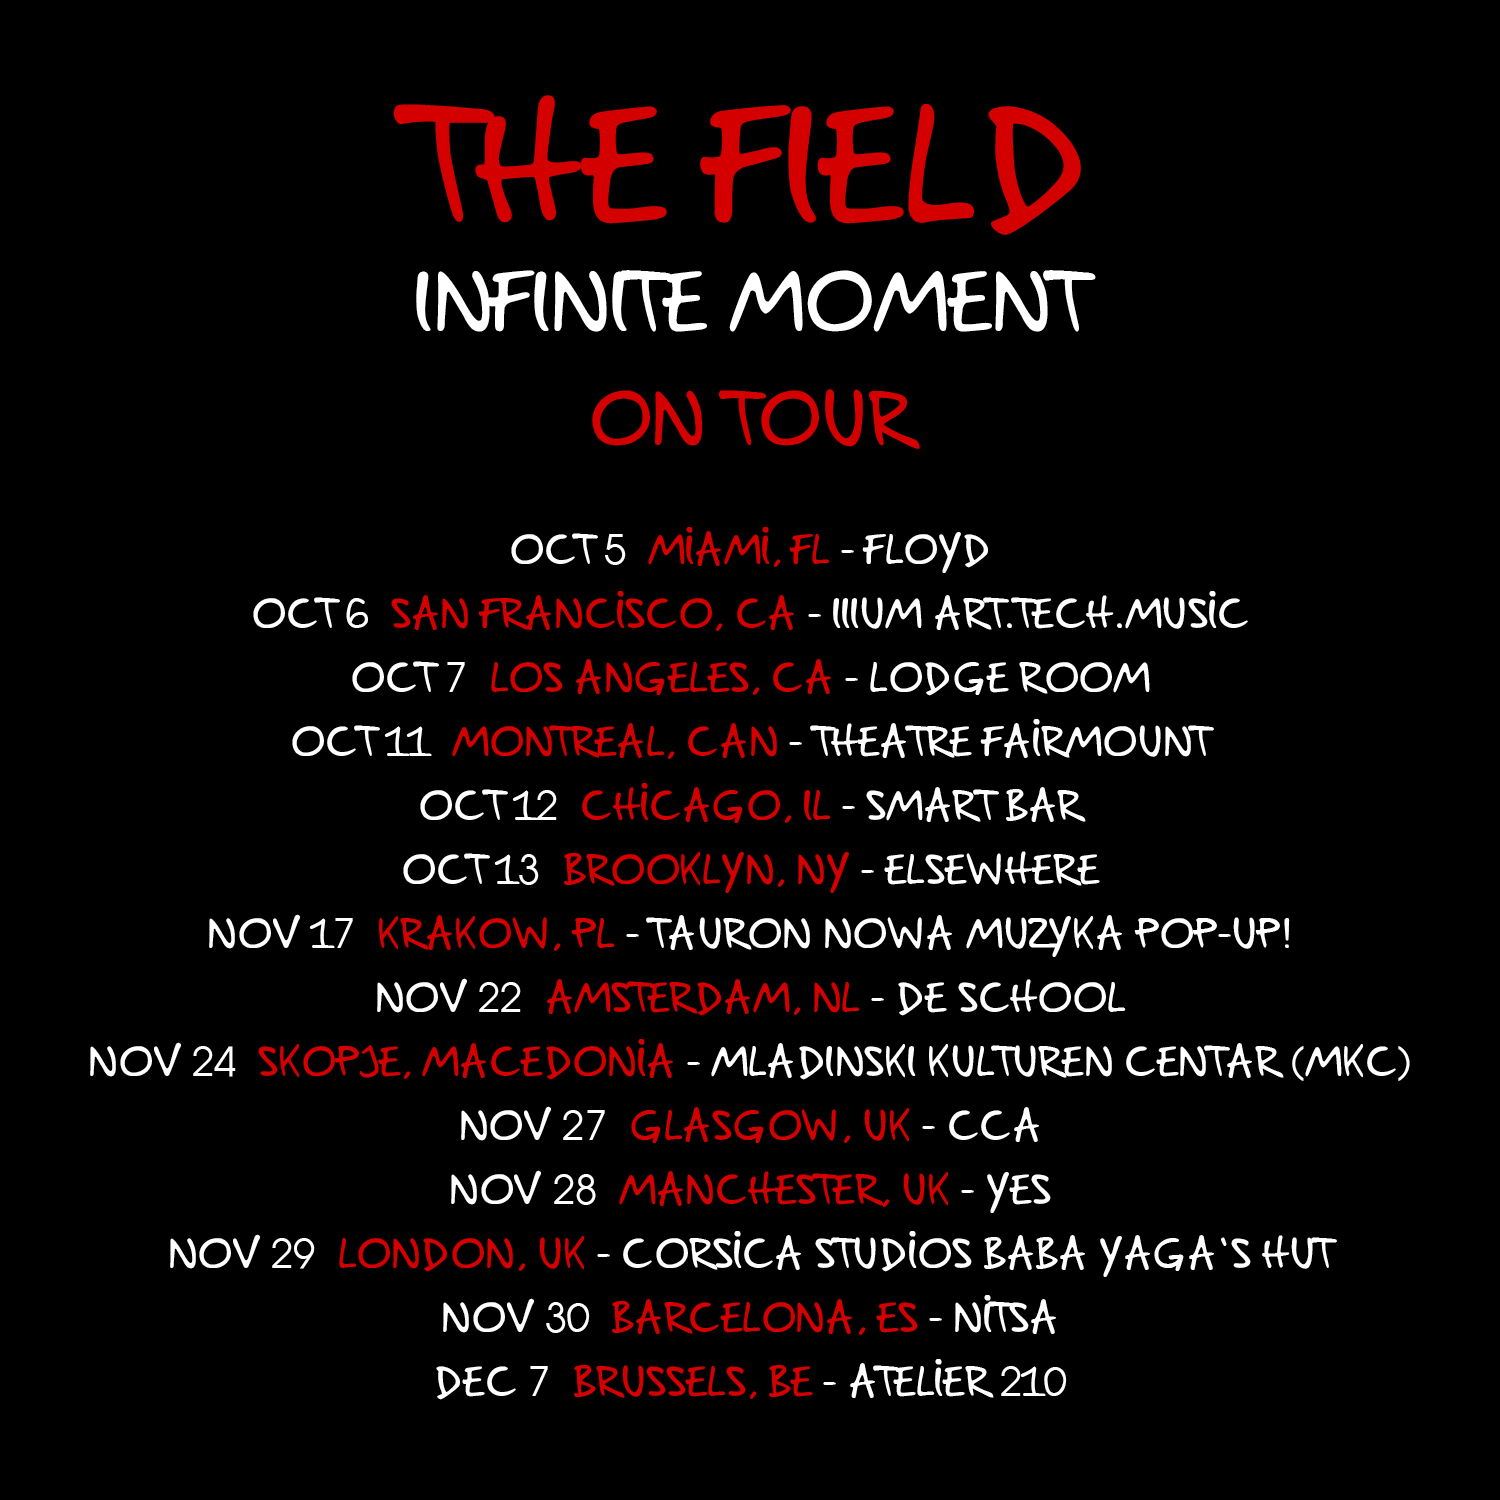 the field tour dates